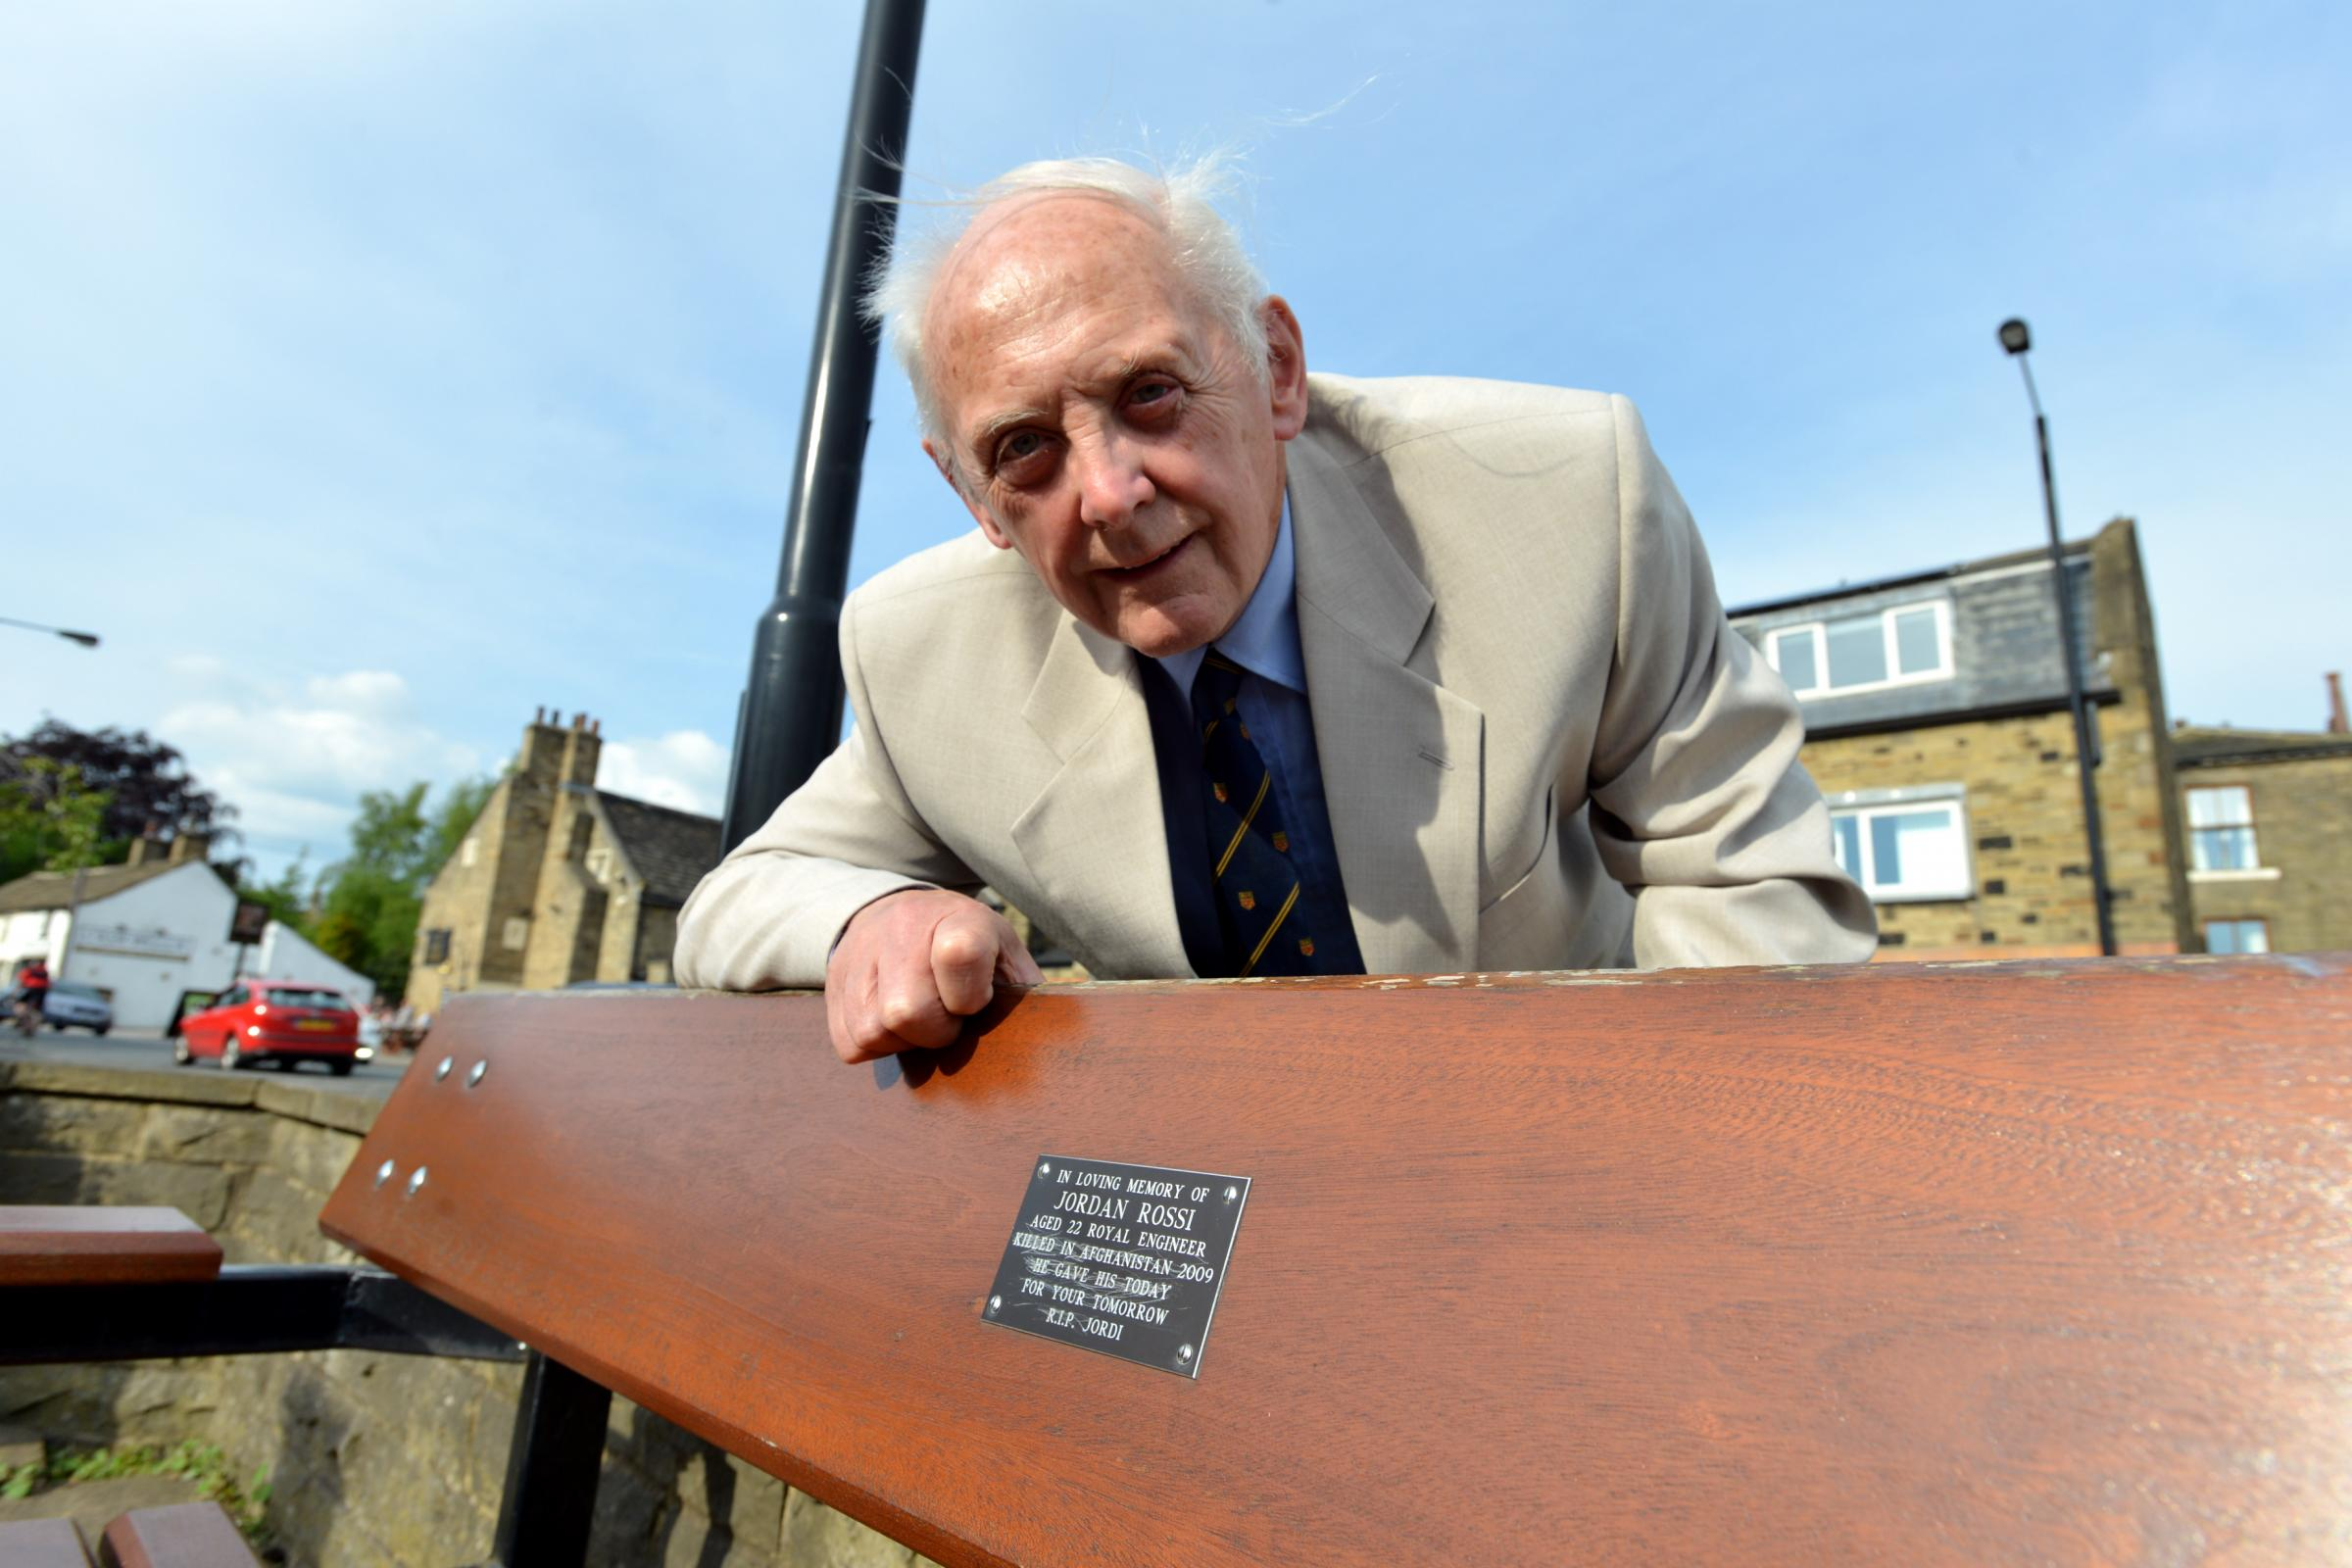 VIDEO: Heartache as soldier's bench plaque is defaced